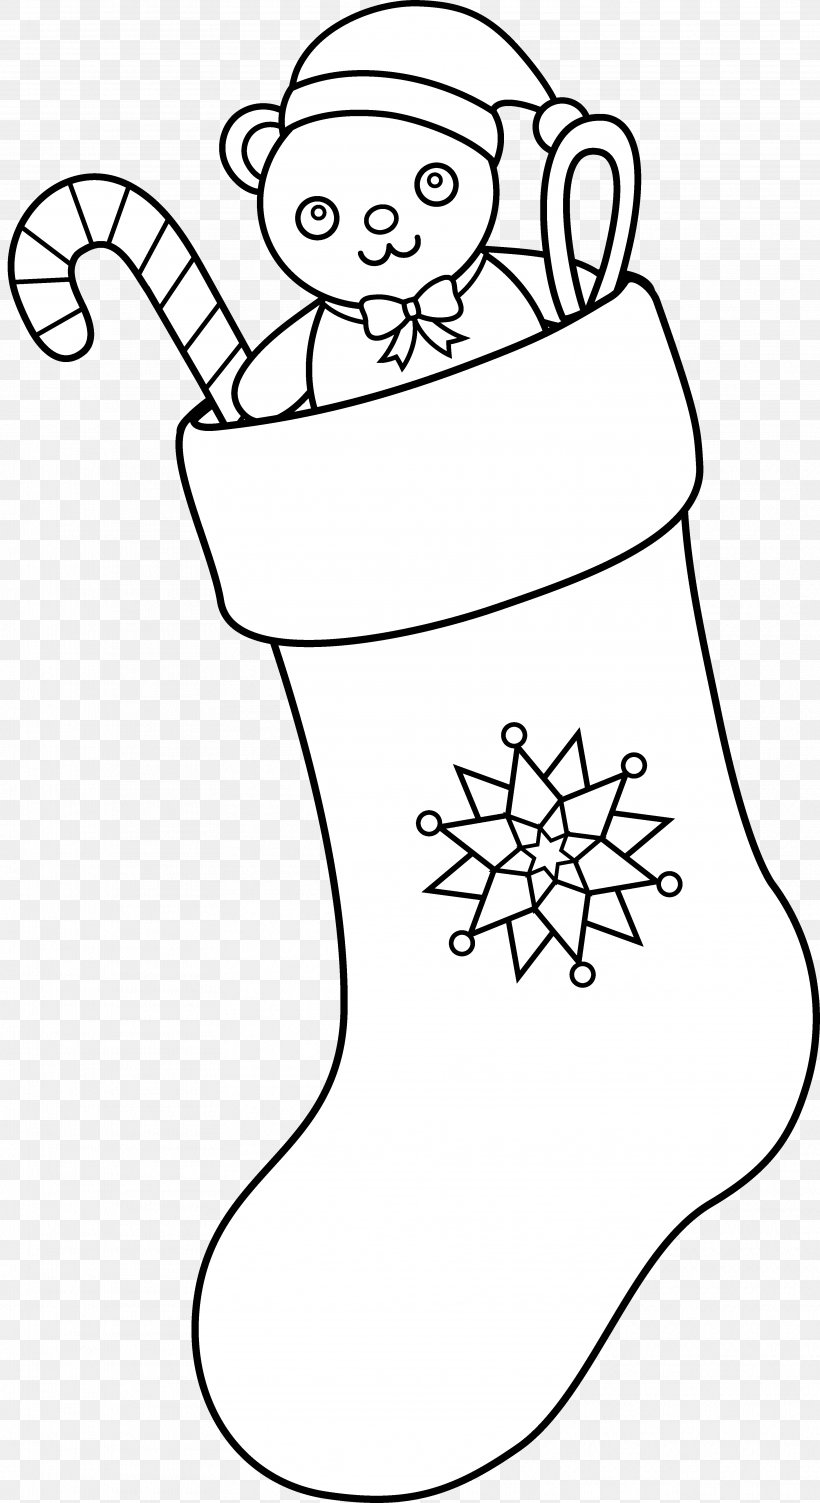 Christmas Stockings Black And White Candy Cane Clip Art, PNG.